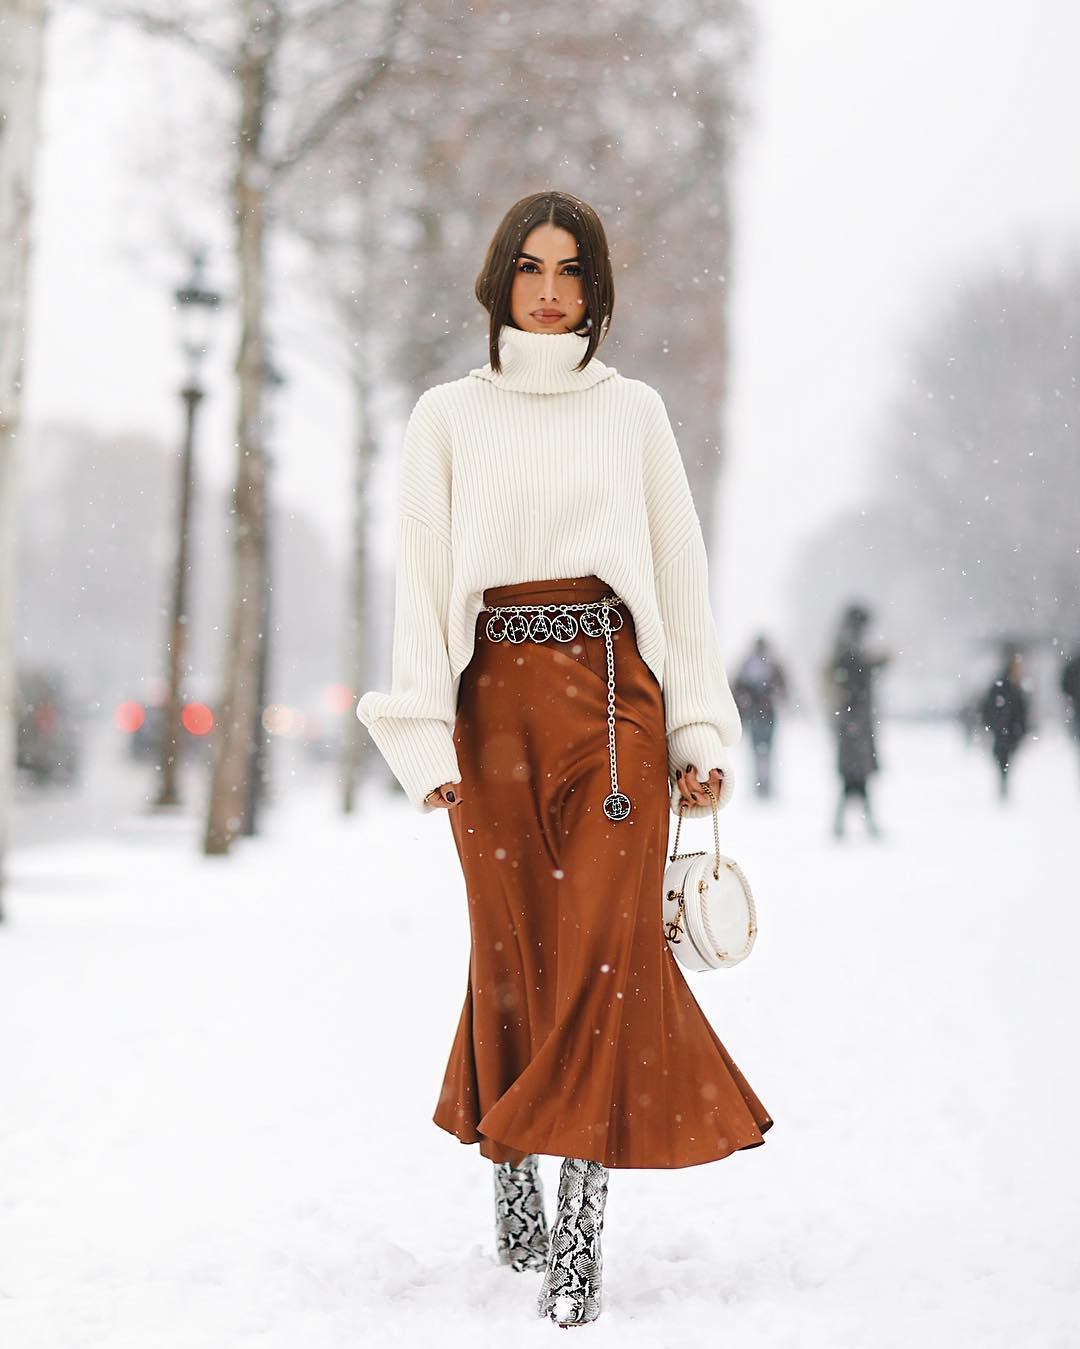 THE SNOW QUEENS FROM THE STREETS OF PARIS